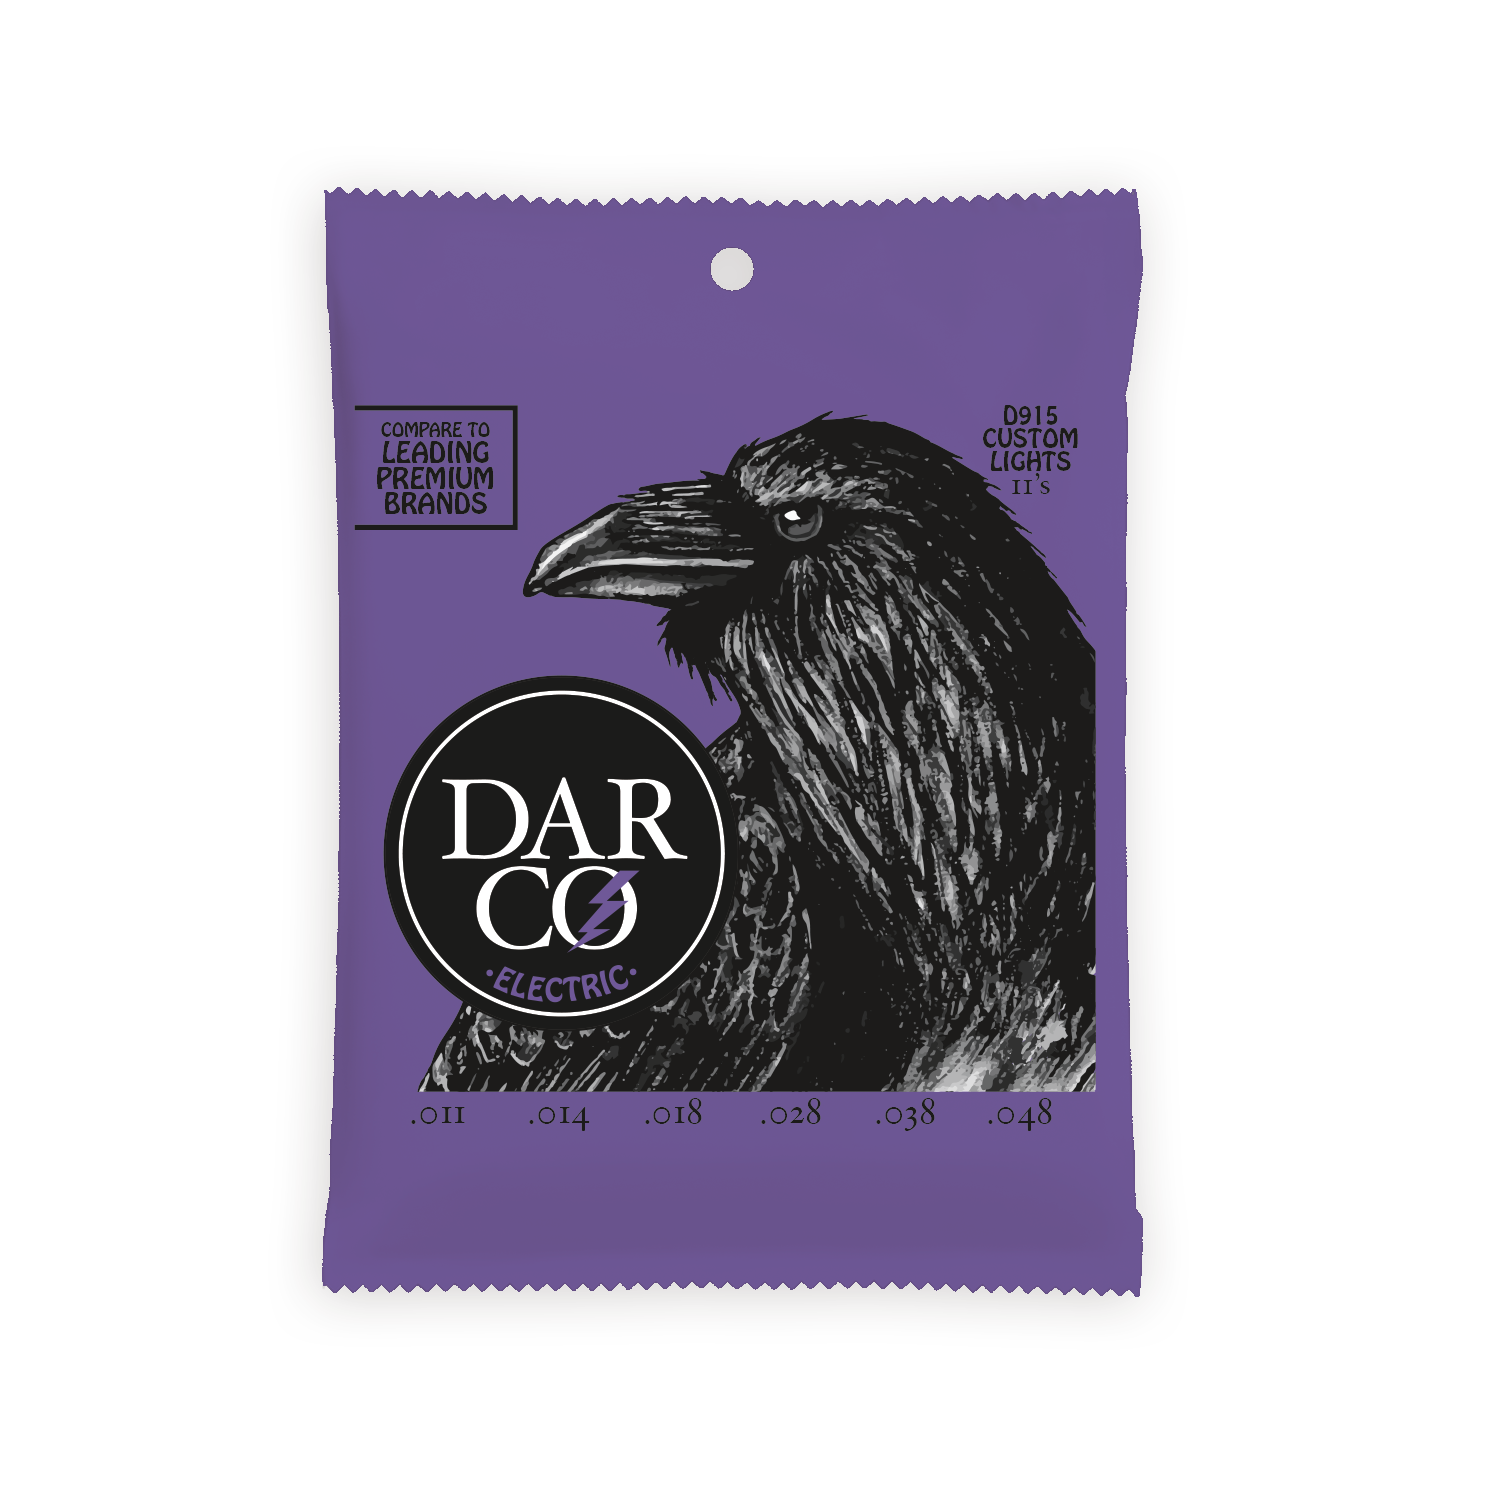 Darco Electric Guitar Strings .011-.048 Custom Light